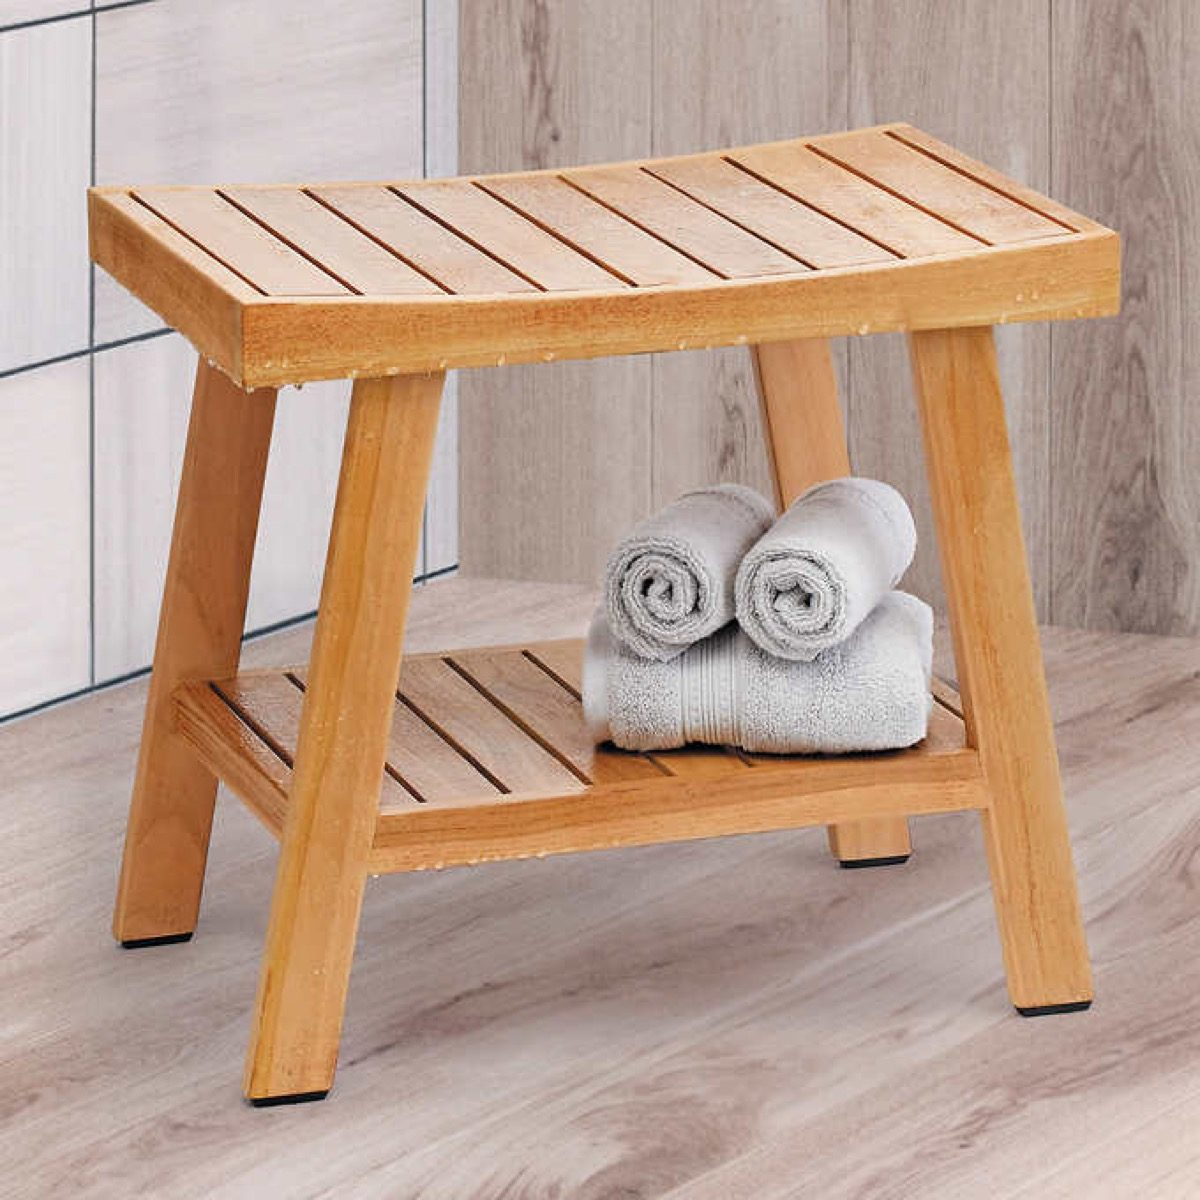 teak shower bench with white towels on its lower shelf